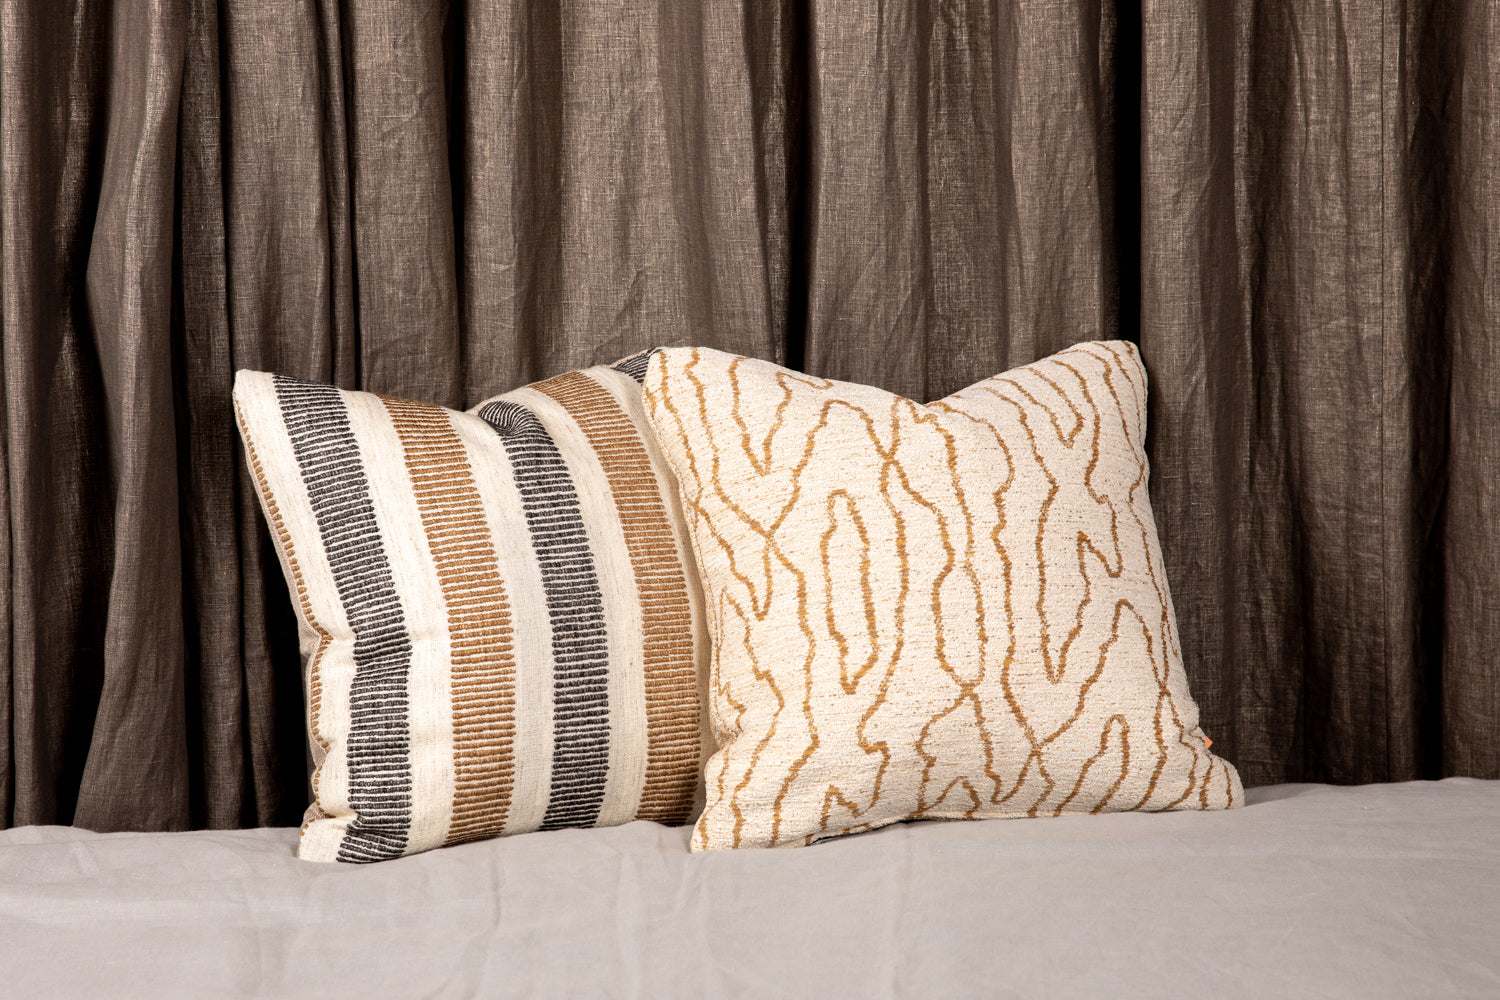 ffabb toss pillows RADG & Maxwell fabrics  woven and chenille fabrics